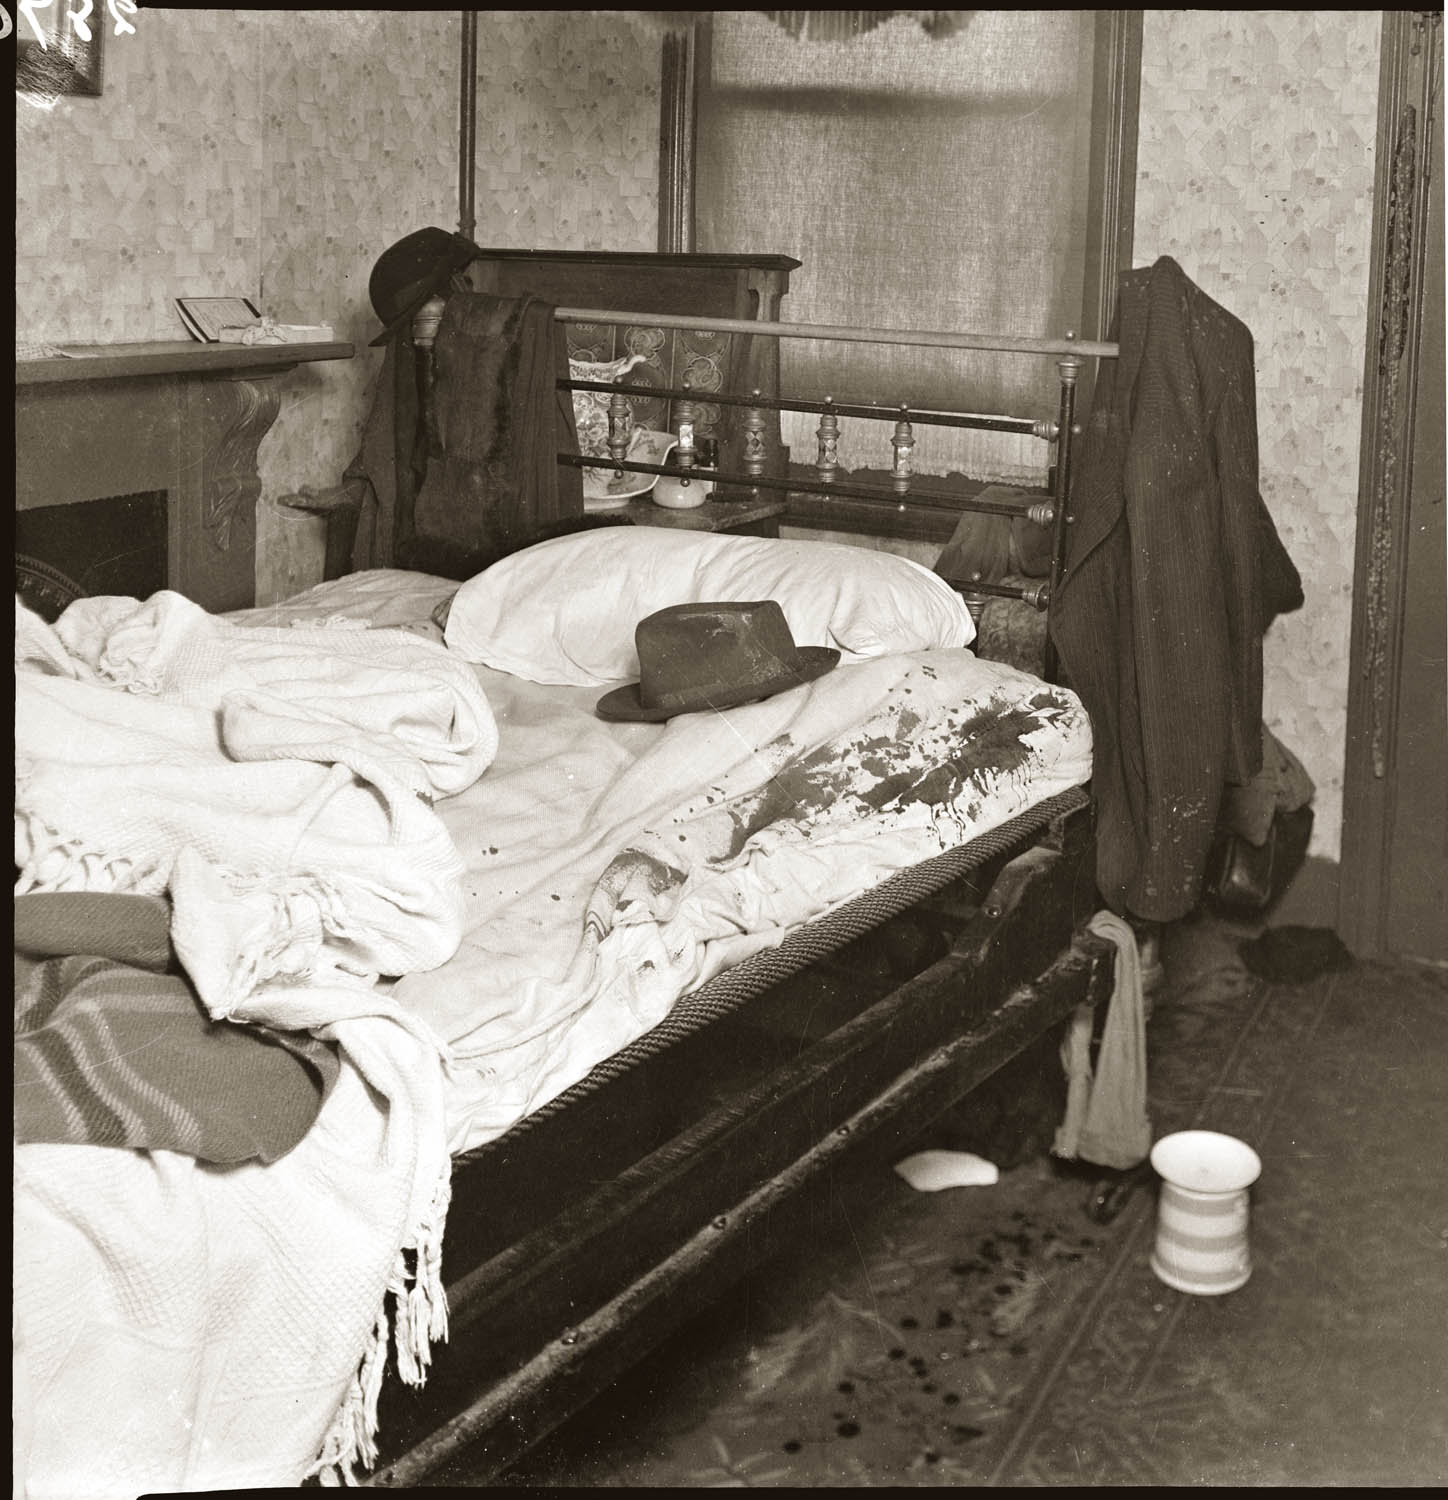 Domestic interior: bloodstains on bed sheets and man's hat. Probably mid 1940s, details unknown.